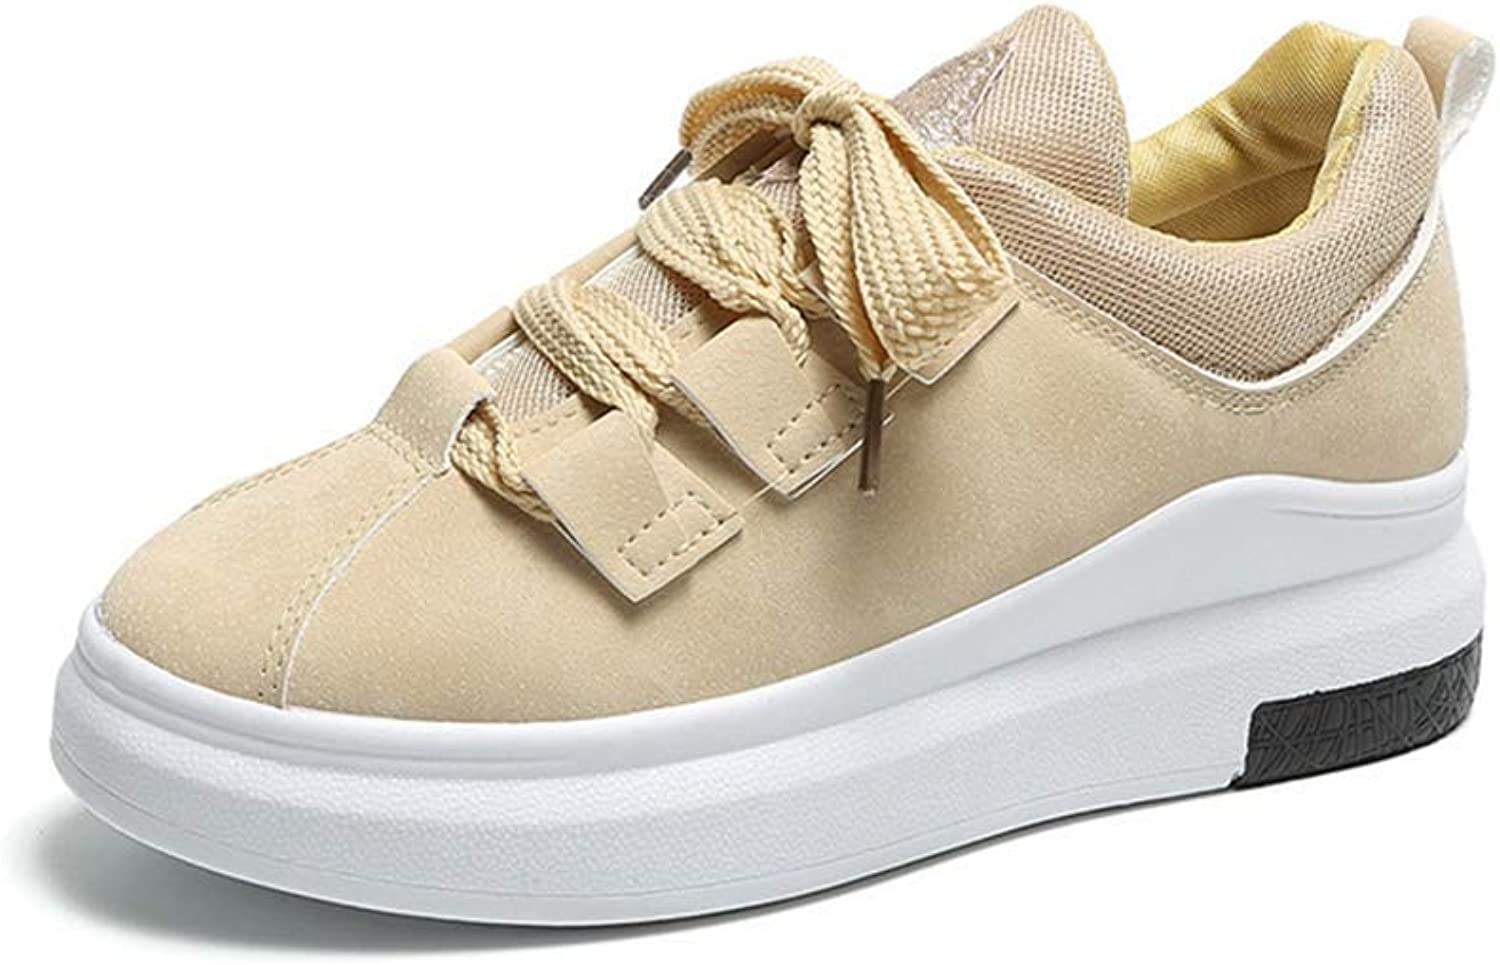 Ghapwe Women Platform Wedge Sneakers Ladies Casual Chunky Sneakers Basket Breathable shoes Girl Rubber Sole Girl Leg Length Elegant Leg Length Reasing Fashion Yellow 6 M US shoes